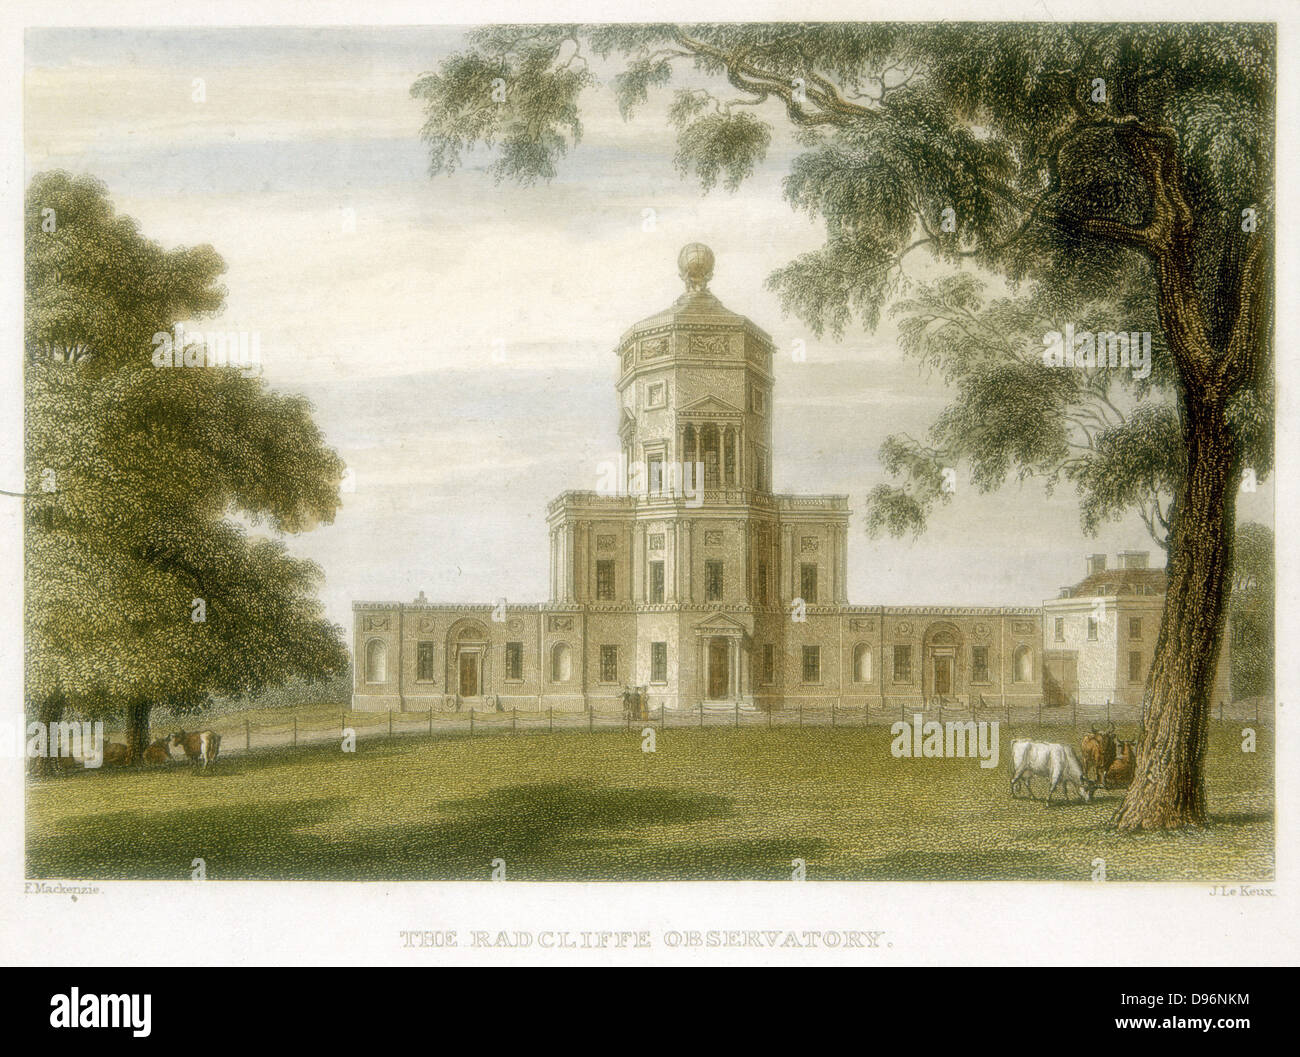 Radcliffe Observatory, Oxford, England, 1834.  Hand-coloured engraving. Stock Photo